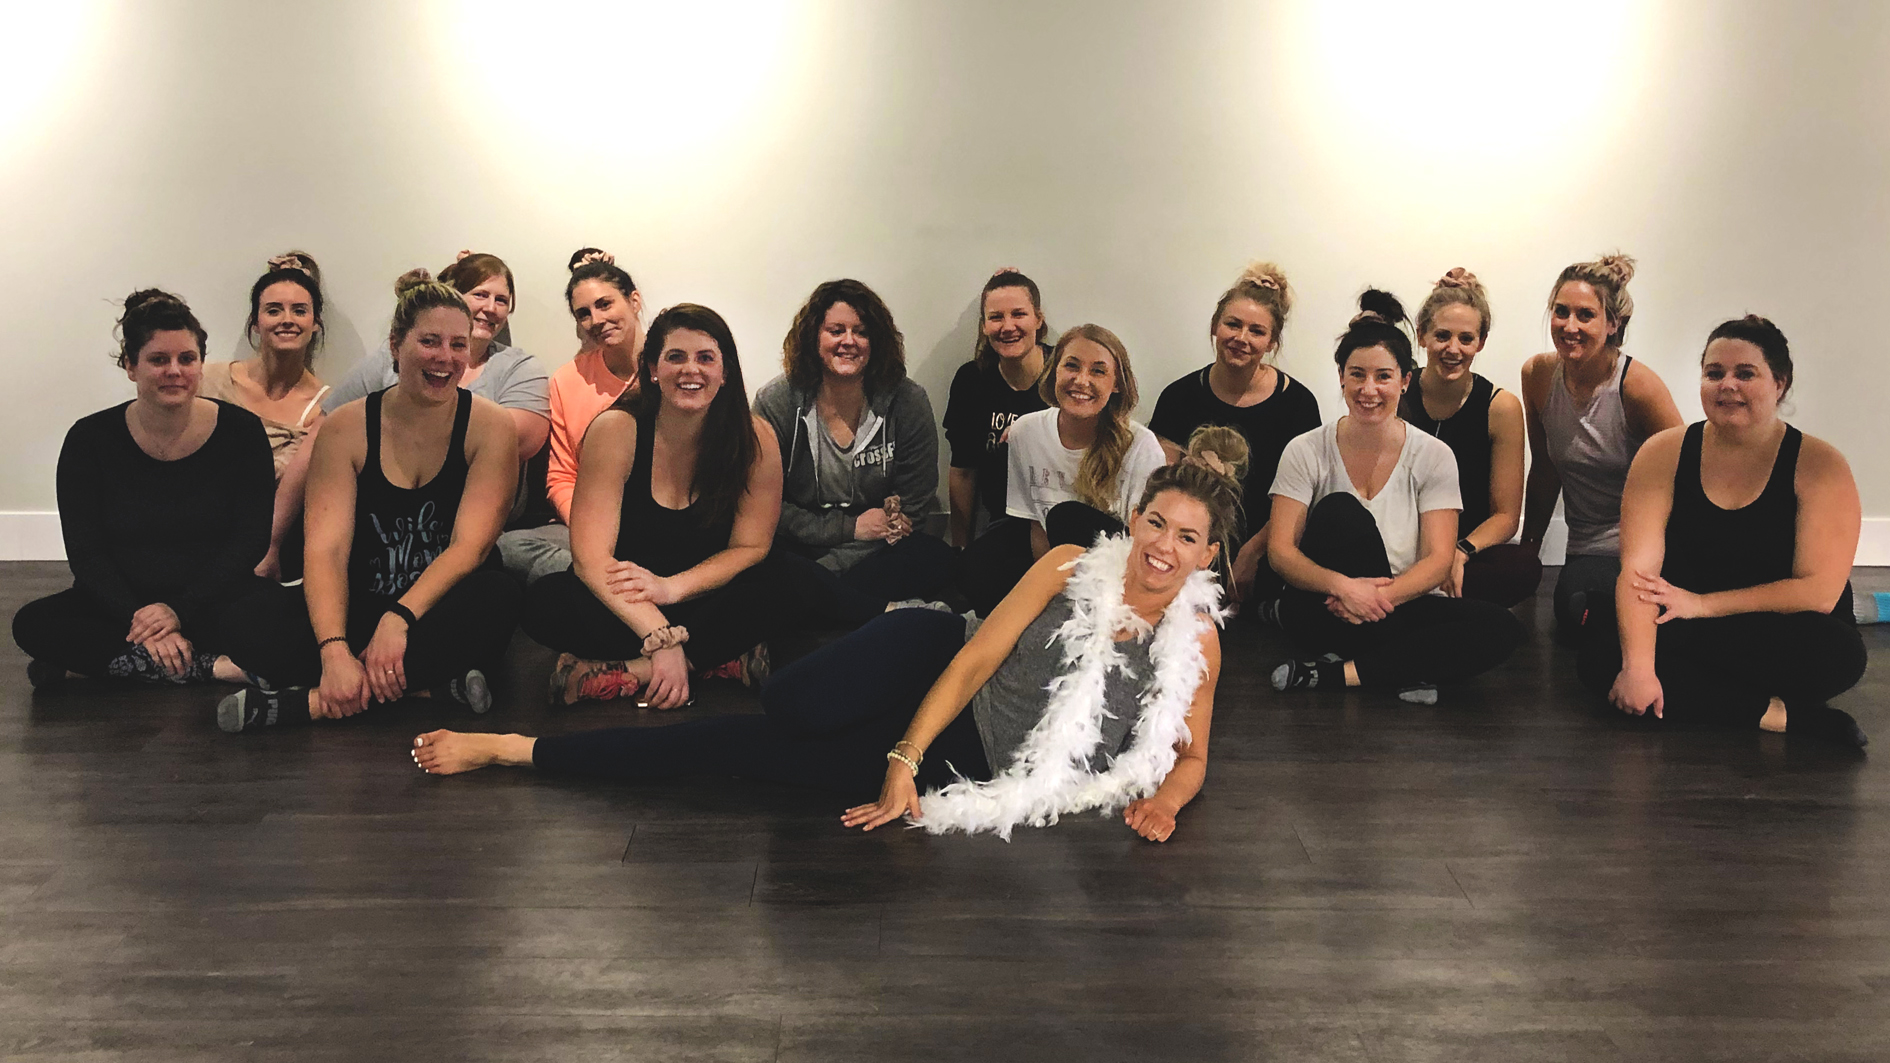 Hype Dance Bachelorette Stagette Hen Party Dance Wedding Bride Kelowna Okanagan